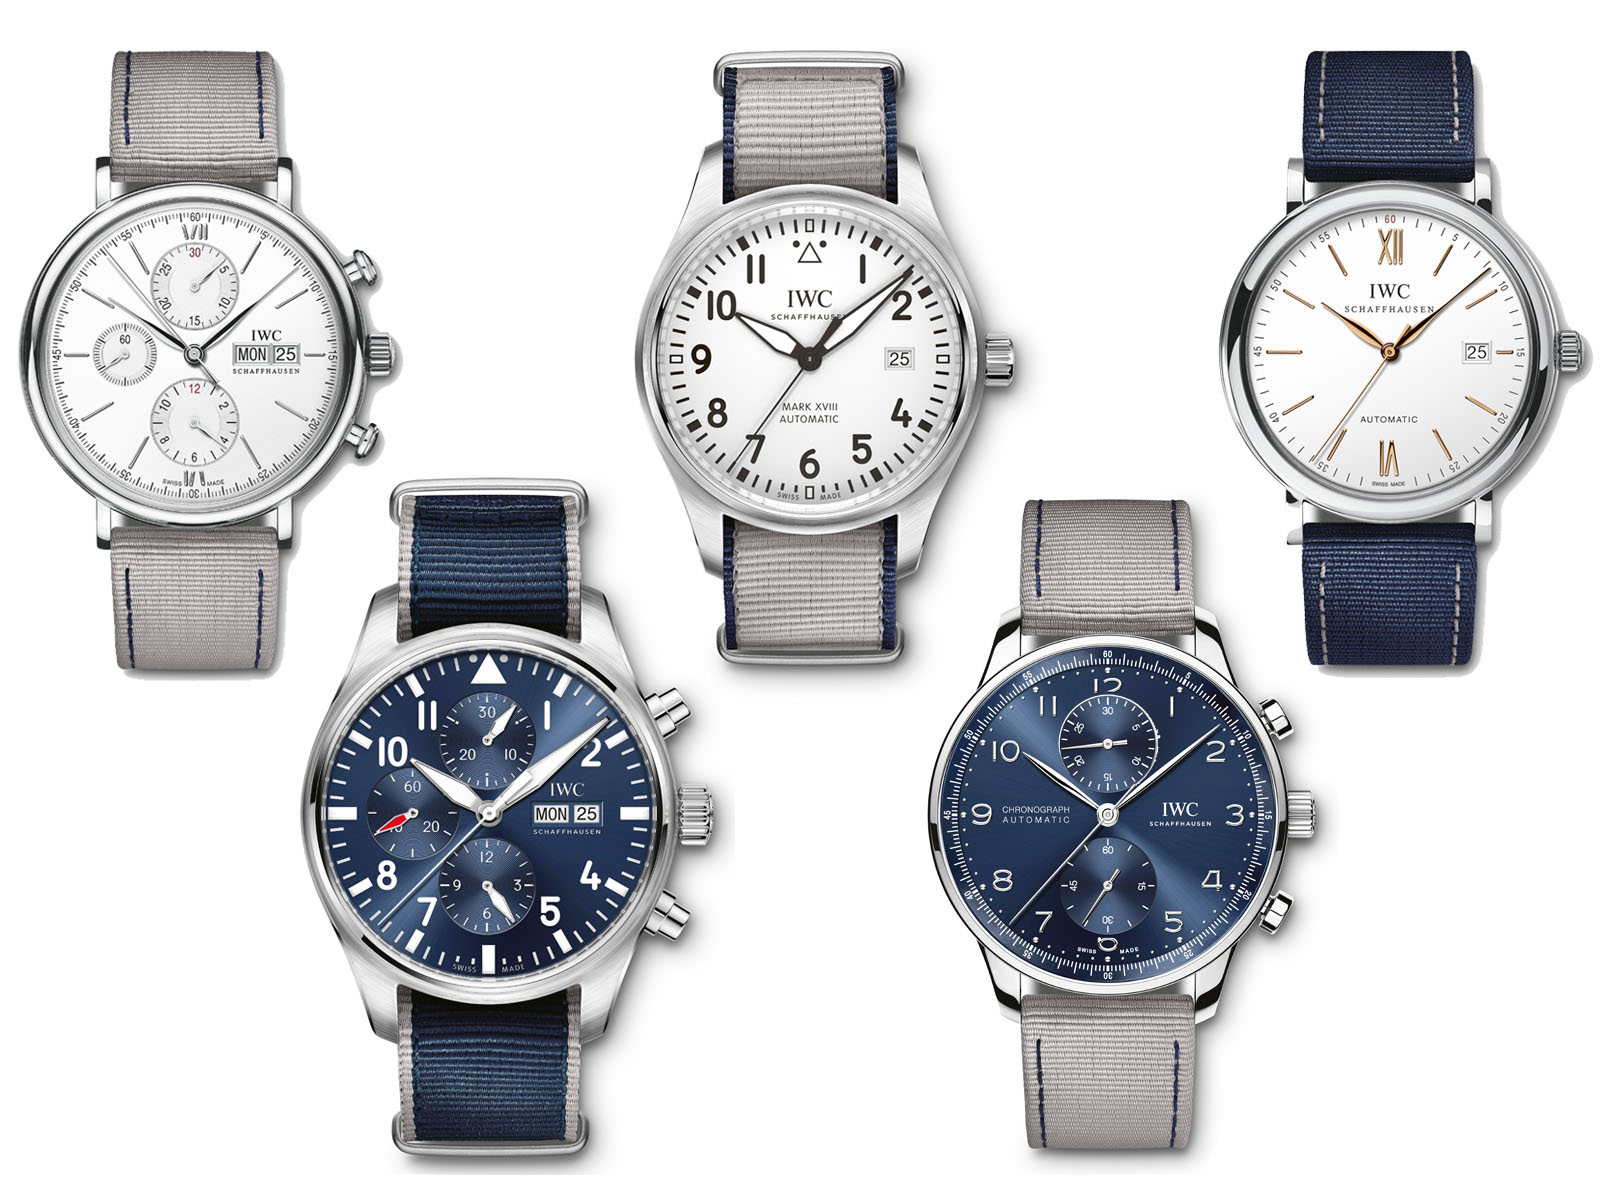 IWC Summer Edition Straps